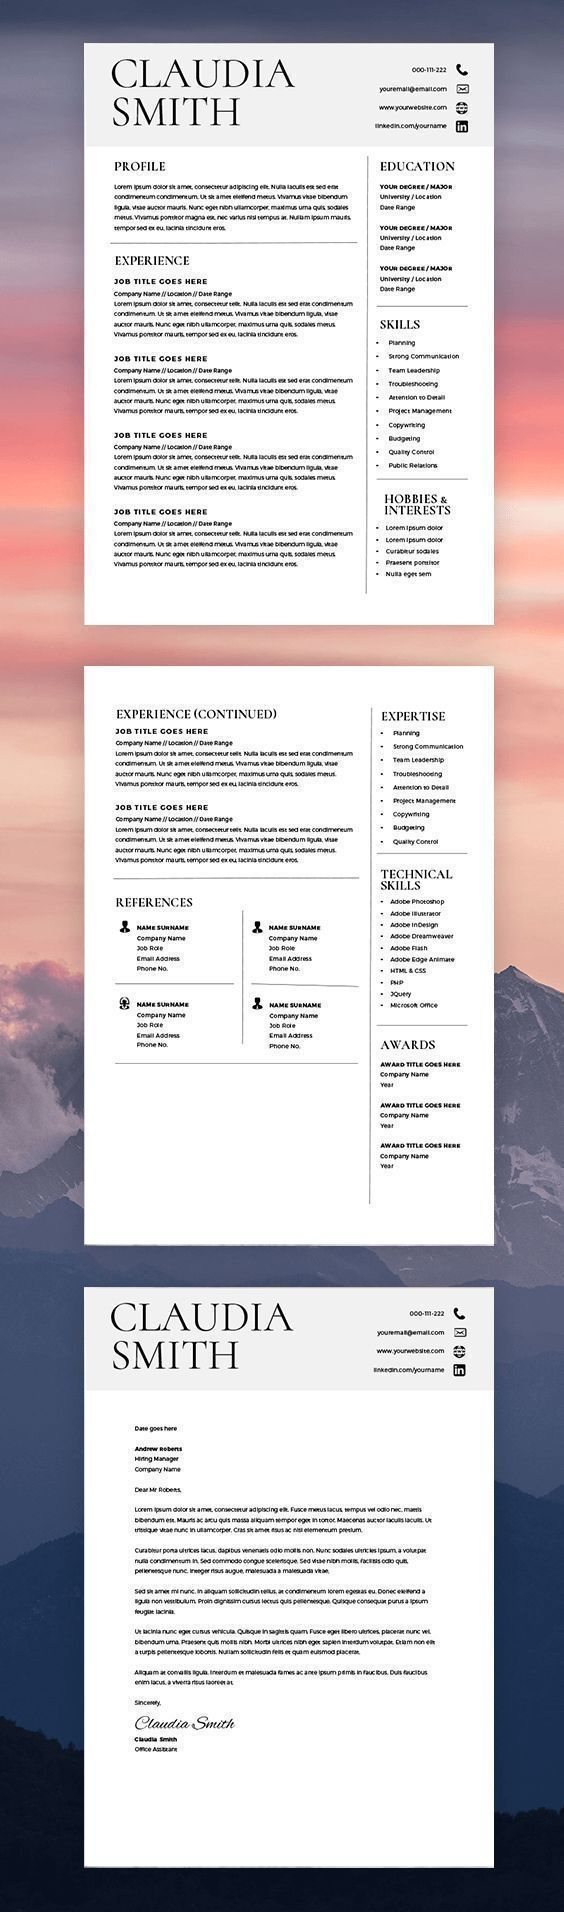 medical resume format%0A Medical Resume Template Word  Minimalist Resume with Cover Letter  Resume  Template Word Mac  Instant Download  Resume Template Word Modern